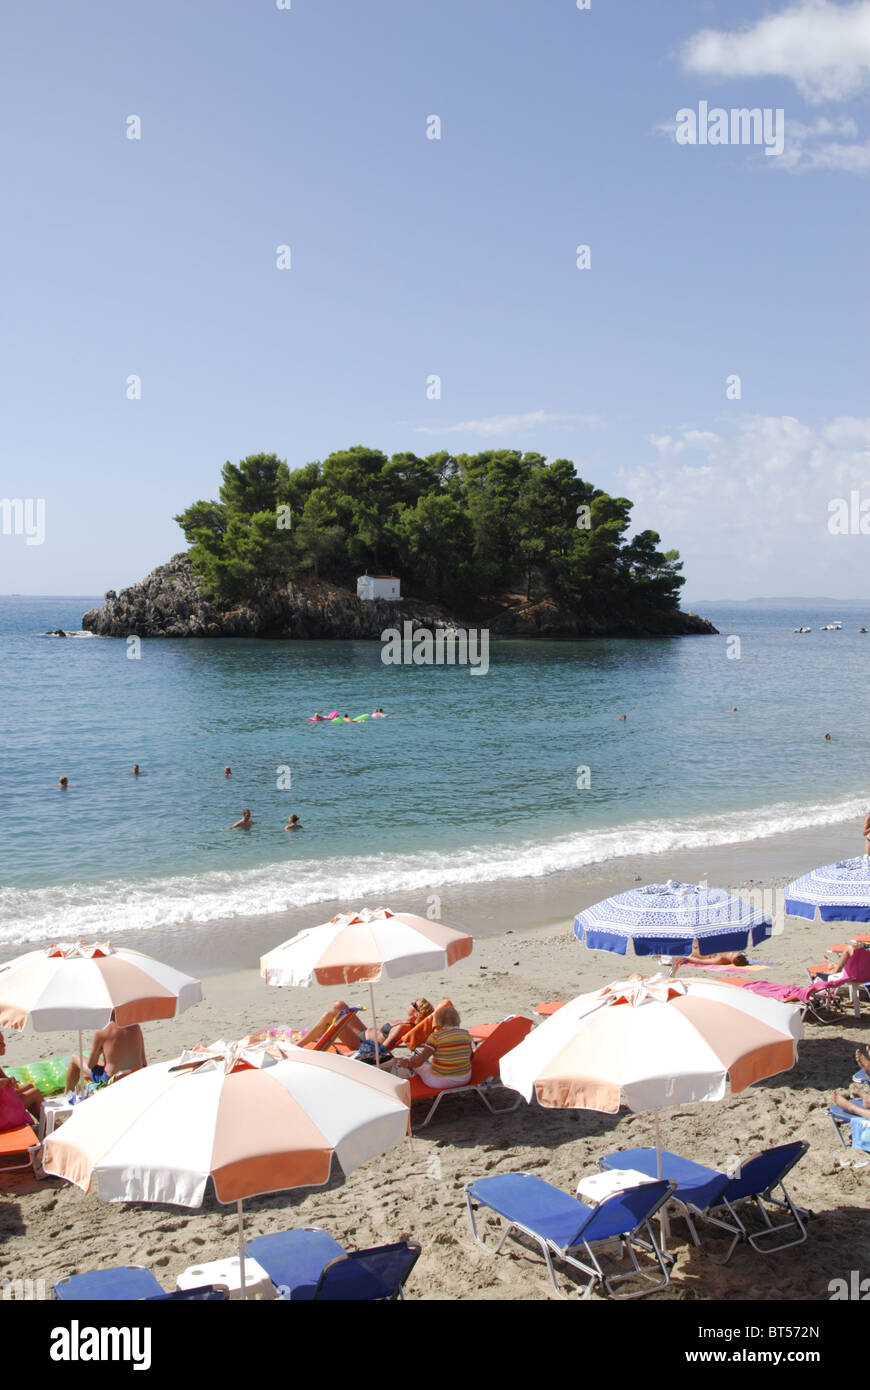 Kryoneri Beach at Parga, Epirus, Greece with sunbathers and swimmers. Panagia Island in the background. - Stock Image